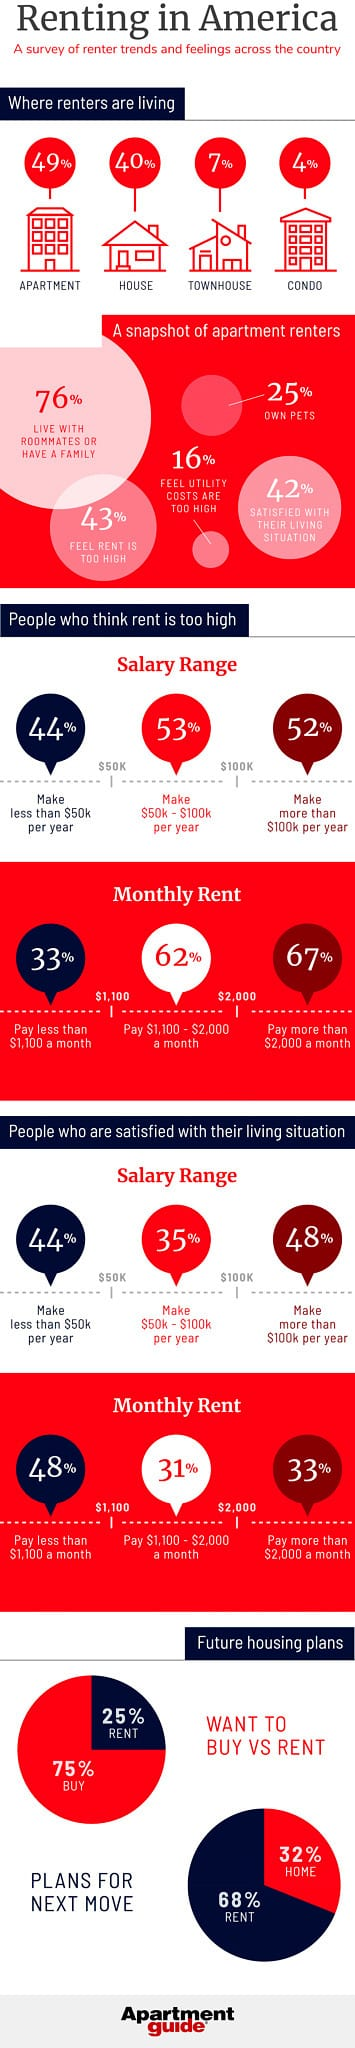 infographic showing what renters think about rent prices